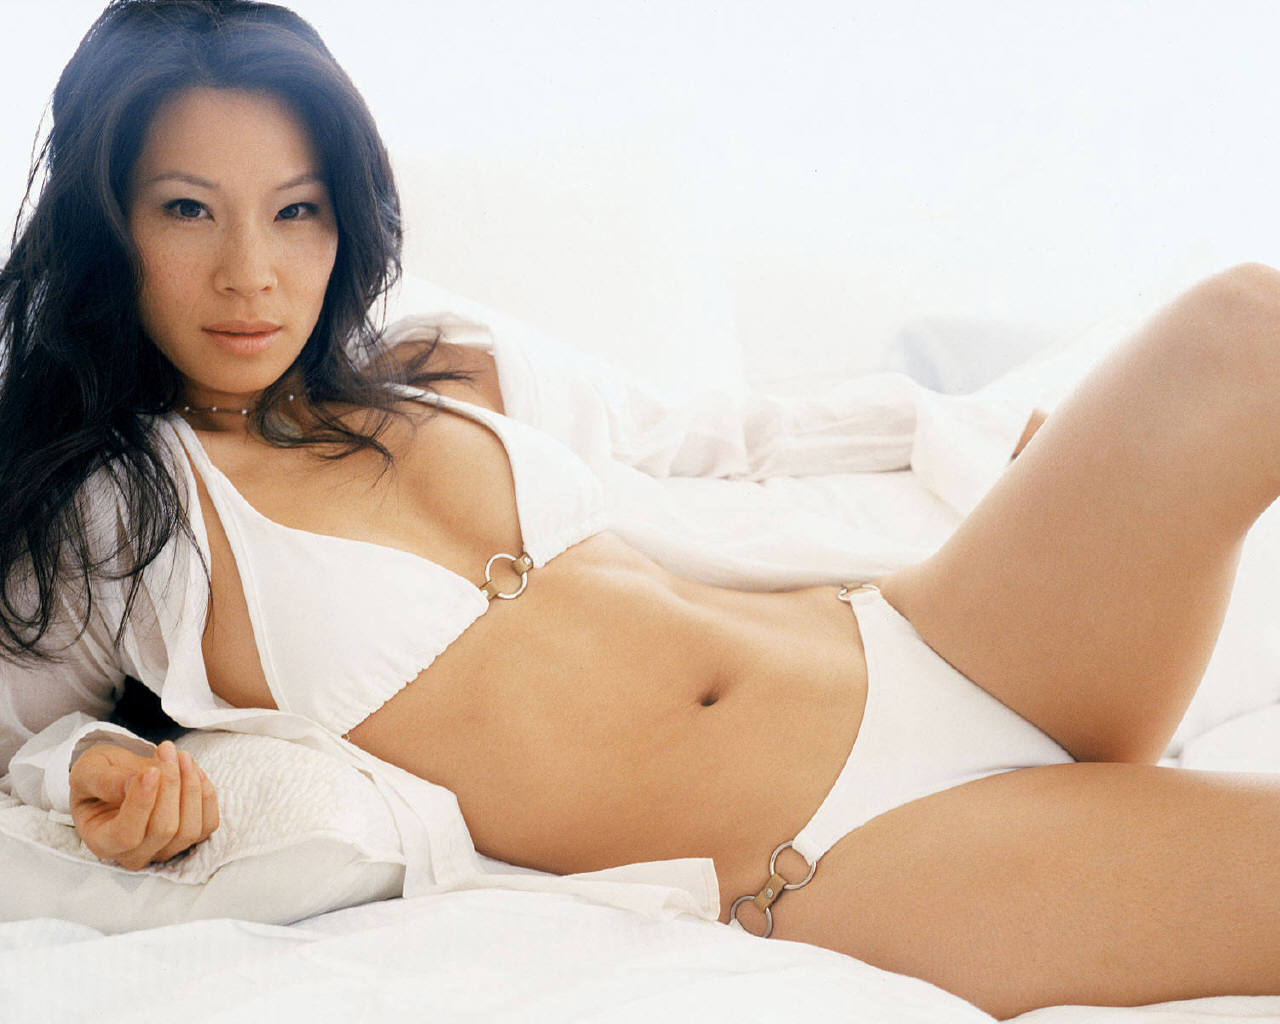 Lucy liu hot consider, that